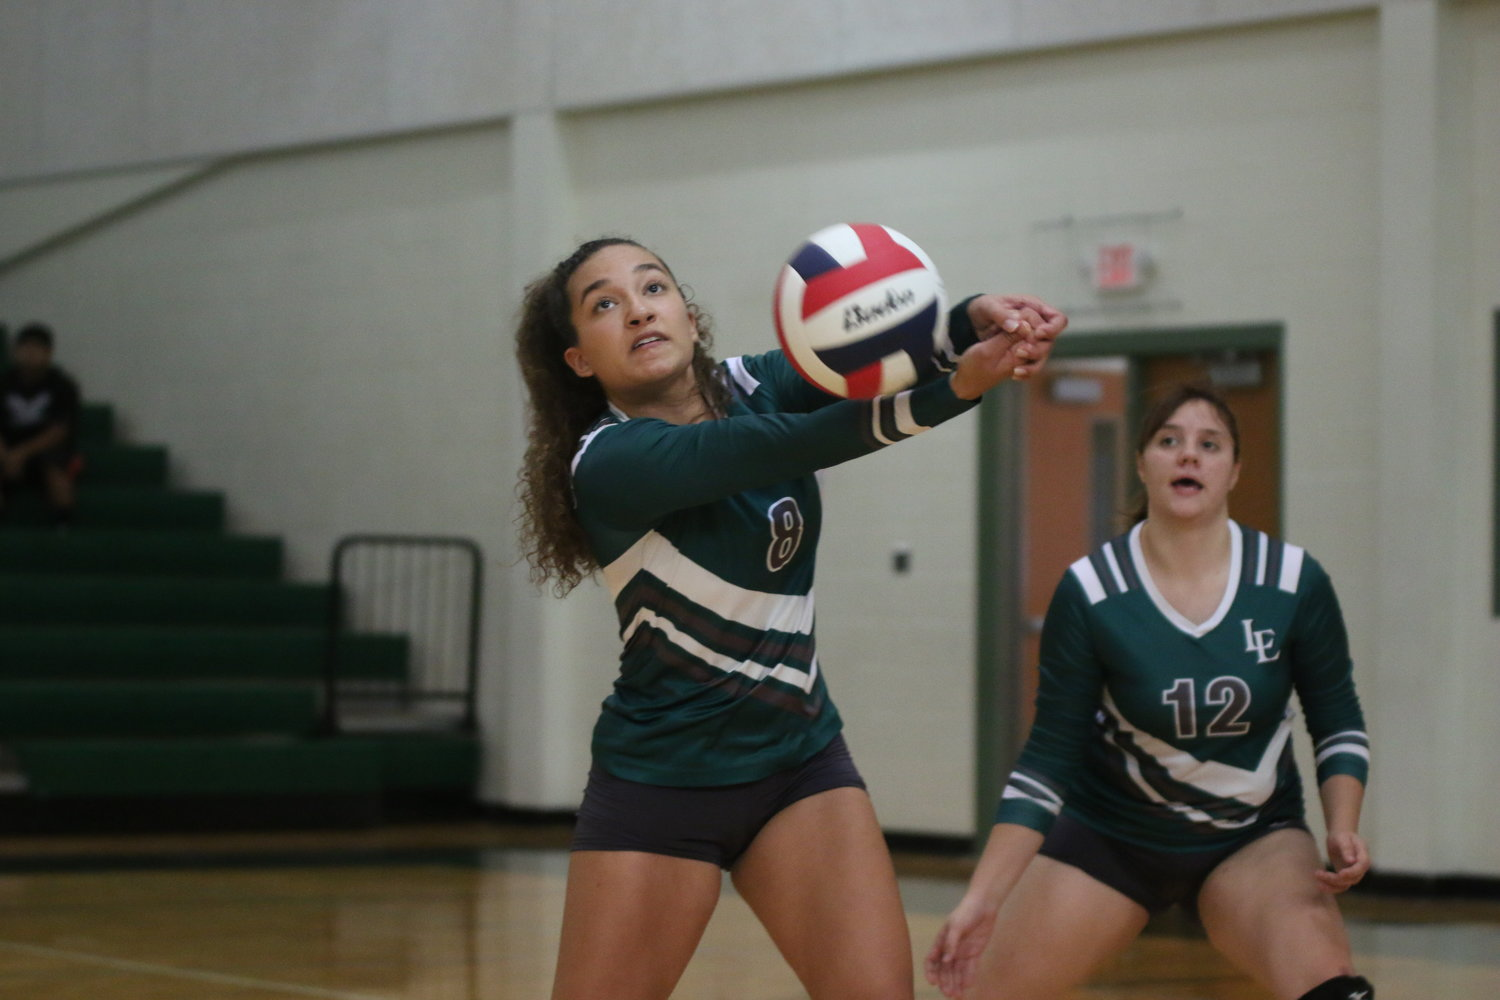 The Luling Lady Eagles struggled Tuesday due to a slow start, but eventually got things going in the second and third set of their three-set loss to Schertz John Paul II.